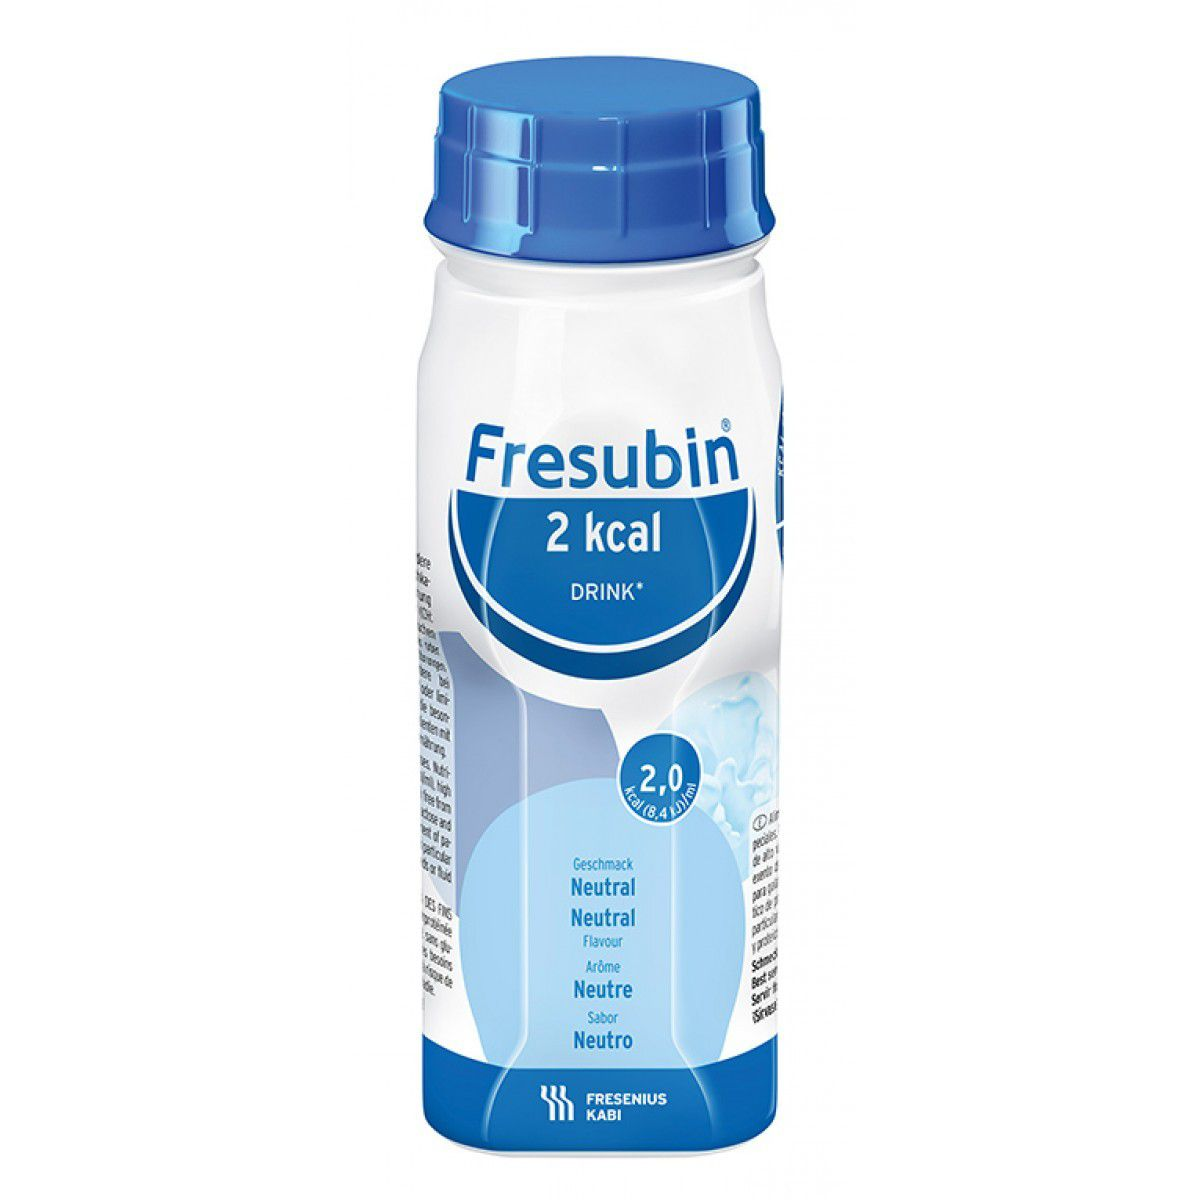 FRESUBIN 2 KCAL DRINK NEUTRO 200ML (KIT 24 UNDS) - FRESENIUS